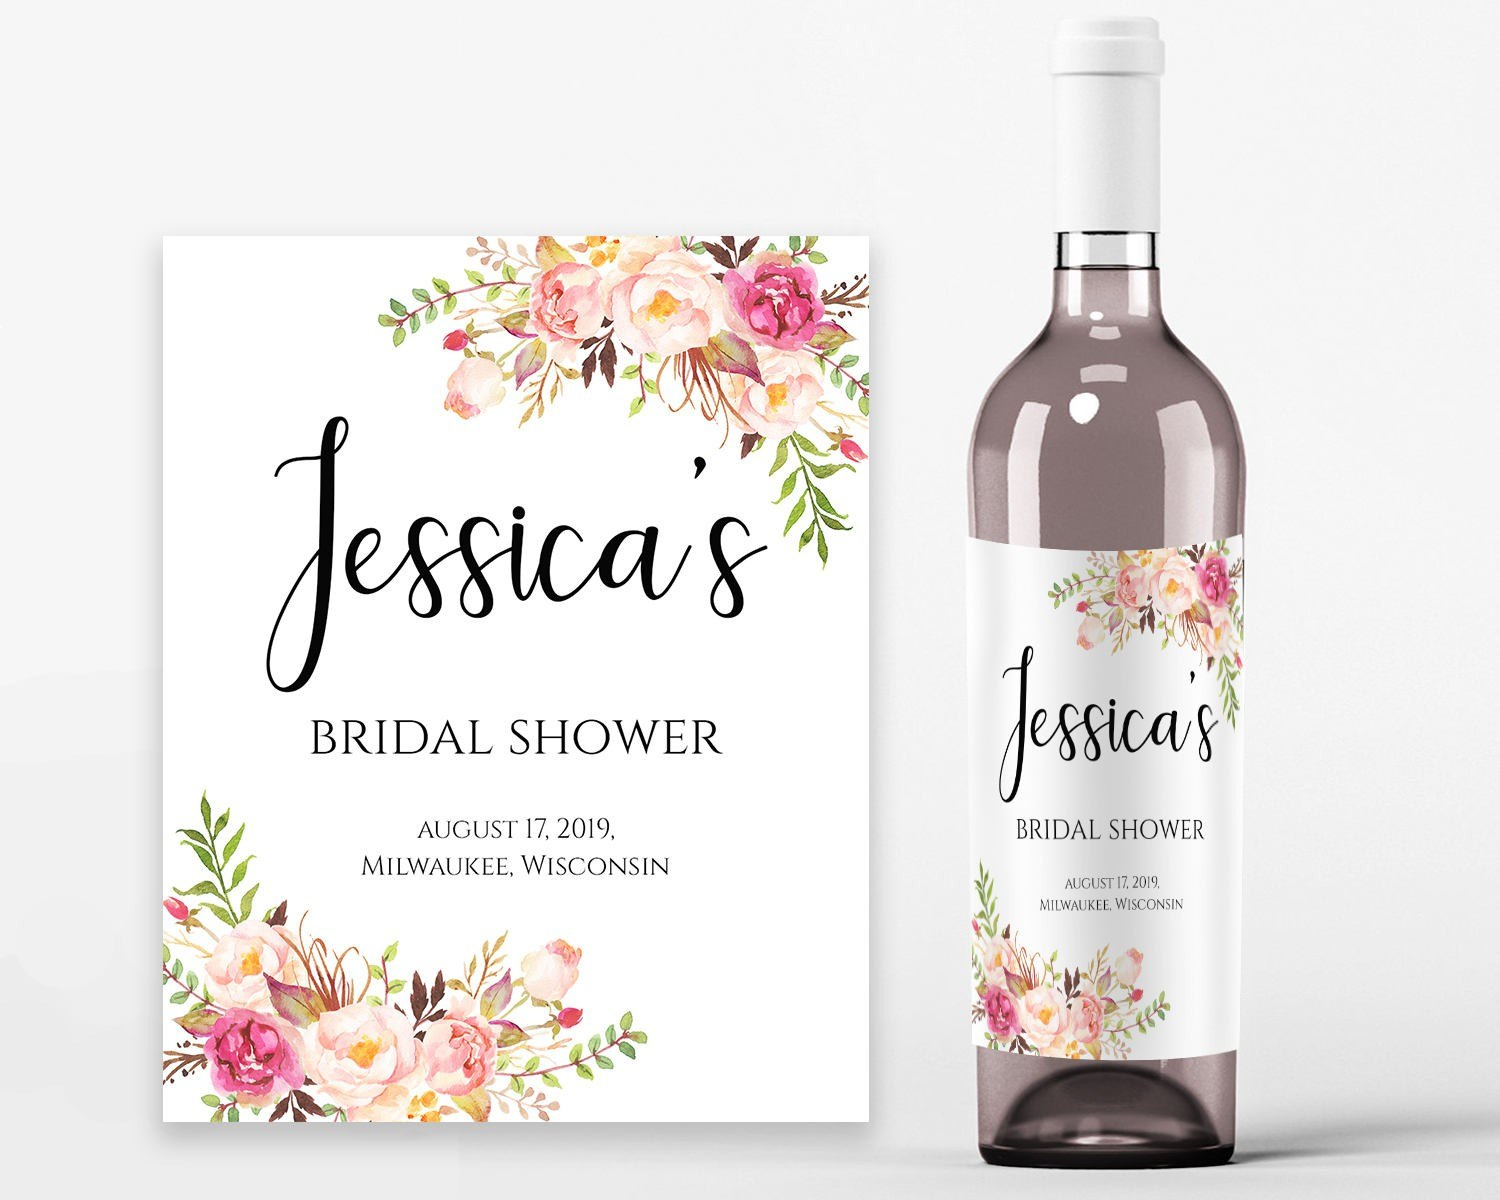 Wine Bottle Label Template Bridal Shower Labels Printable New Throughout Template For Wine Bottle Labels